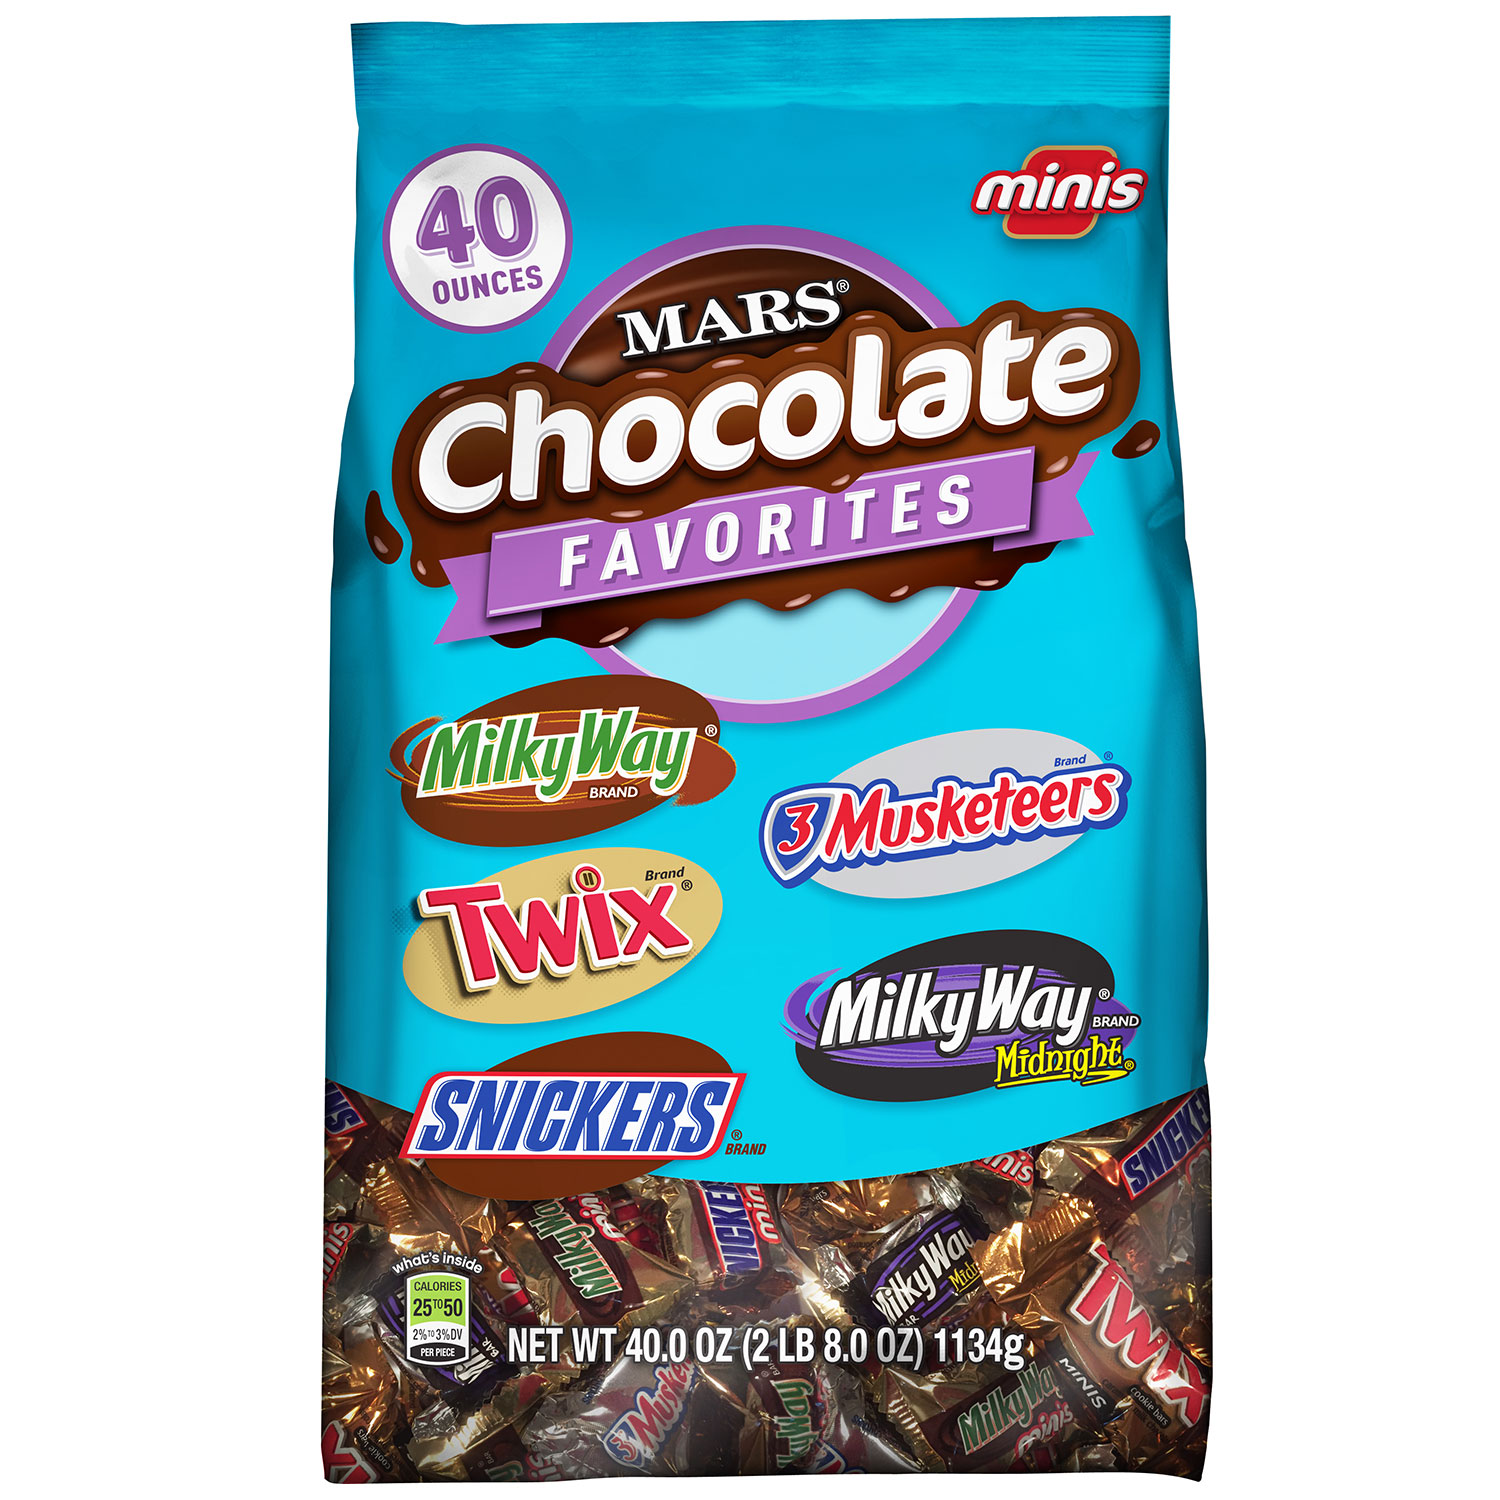 MARS Chocolate Favorites Minis Size Candy Bars Variety Mix Bag (TWIX, MILKY WAY, SNICKERS, 3 MUSKETEERS Brands), 2.5 lb